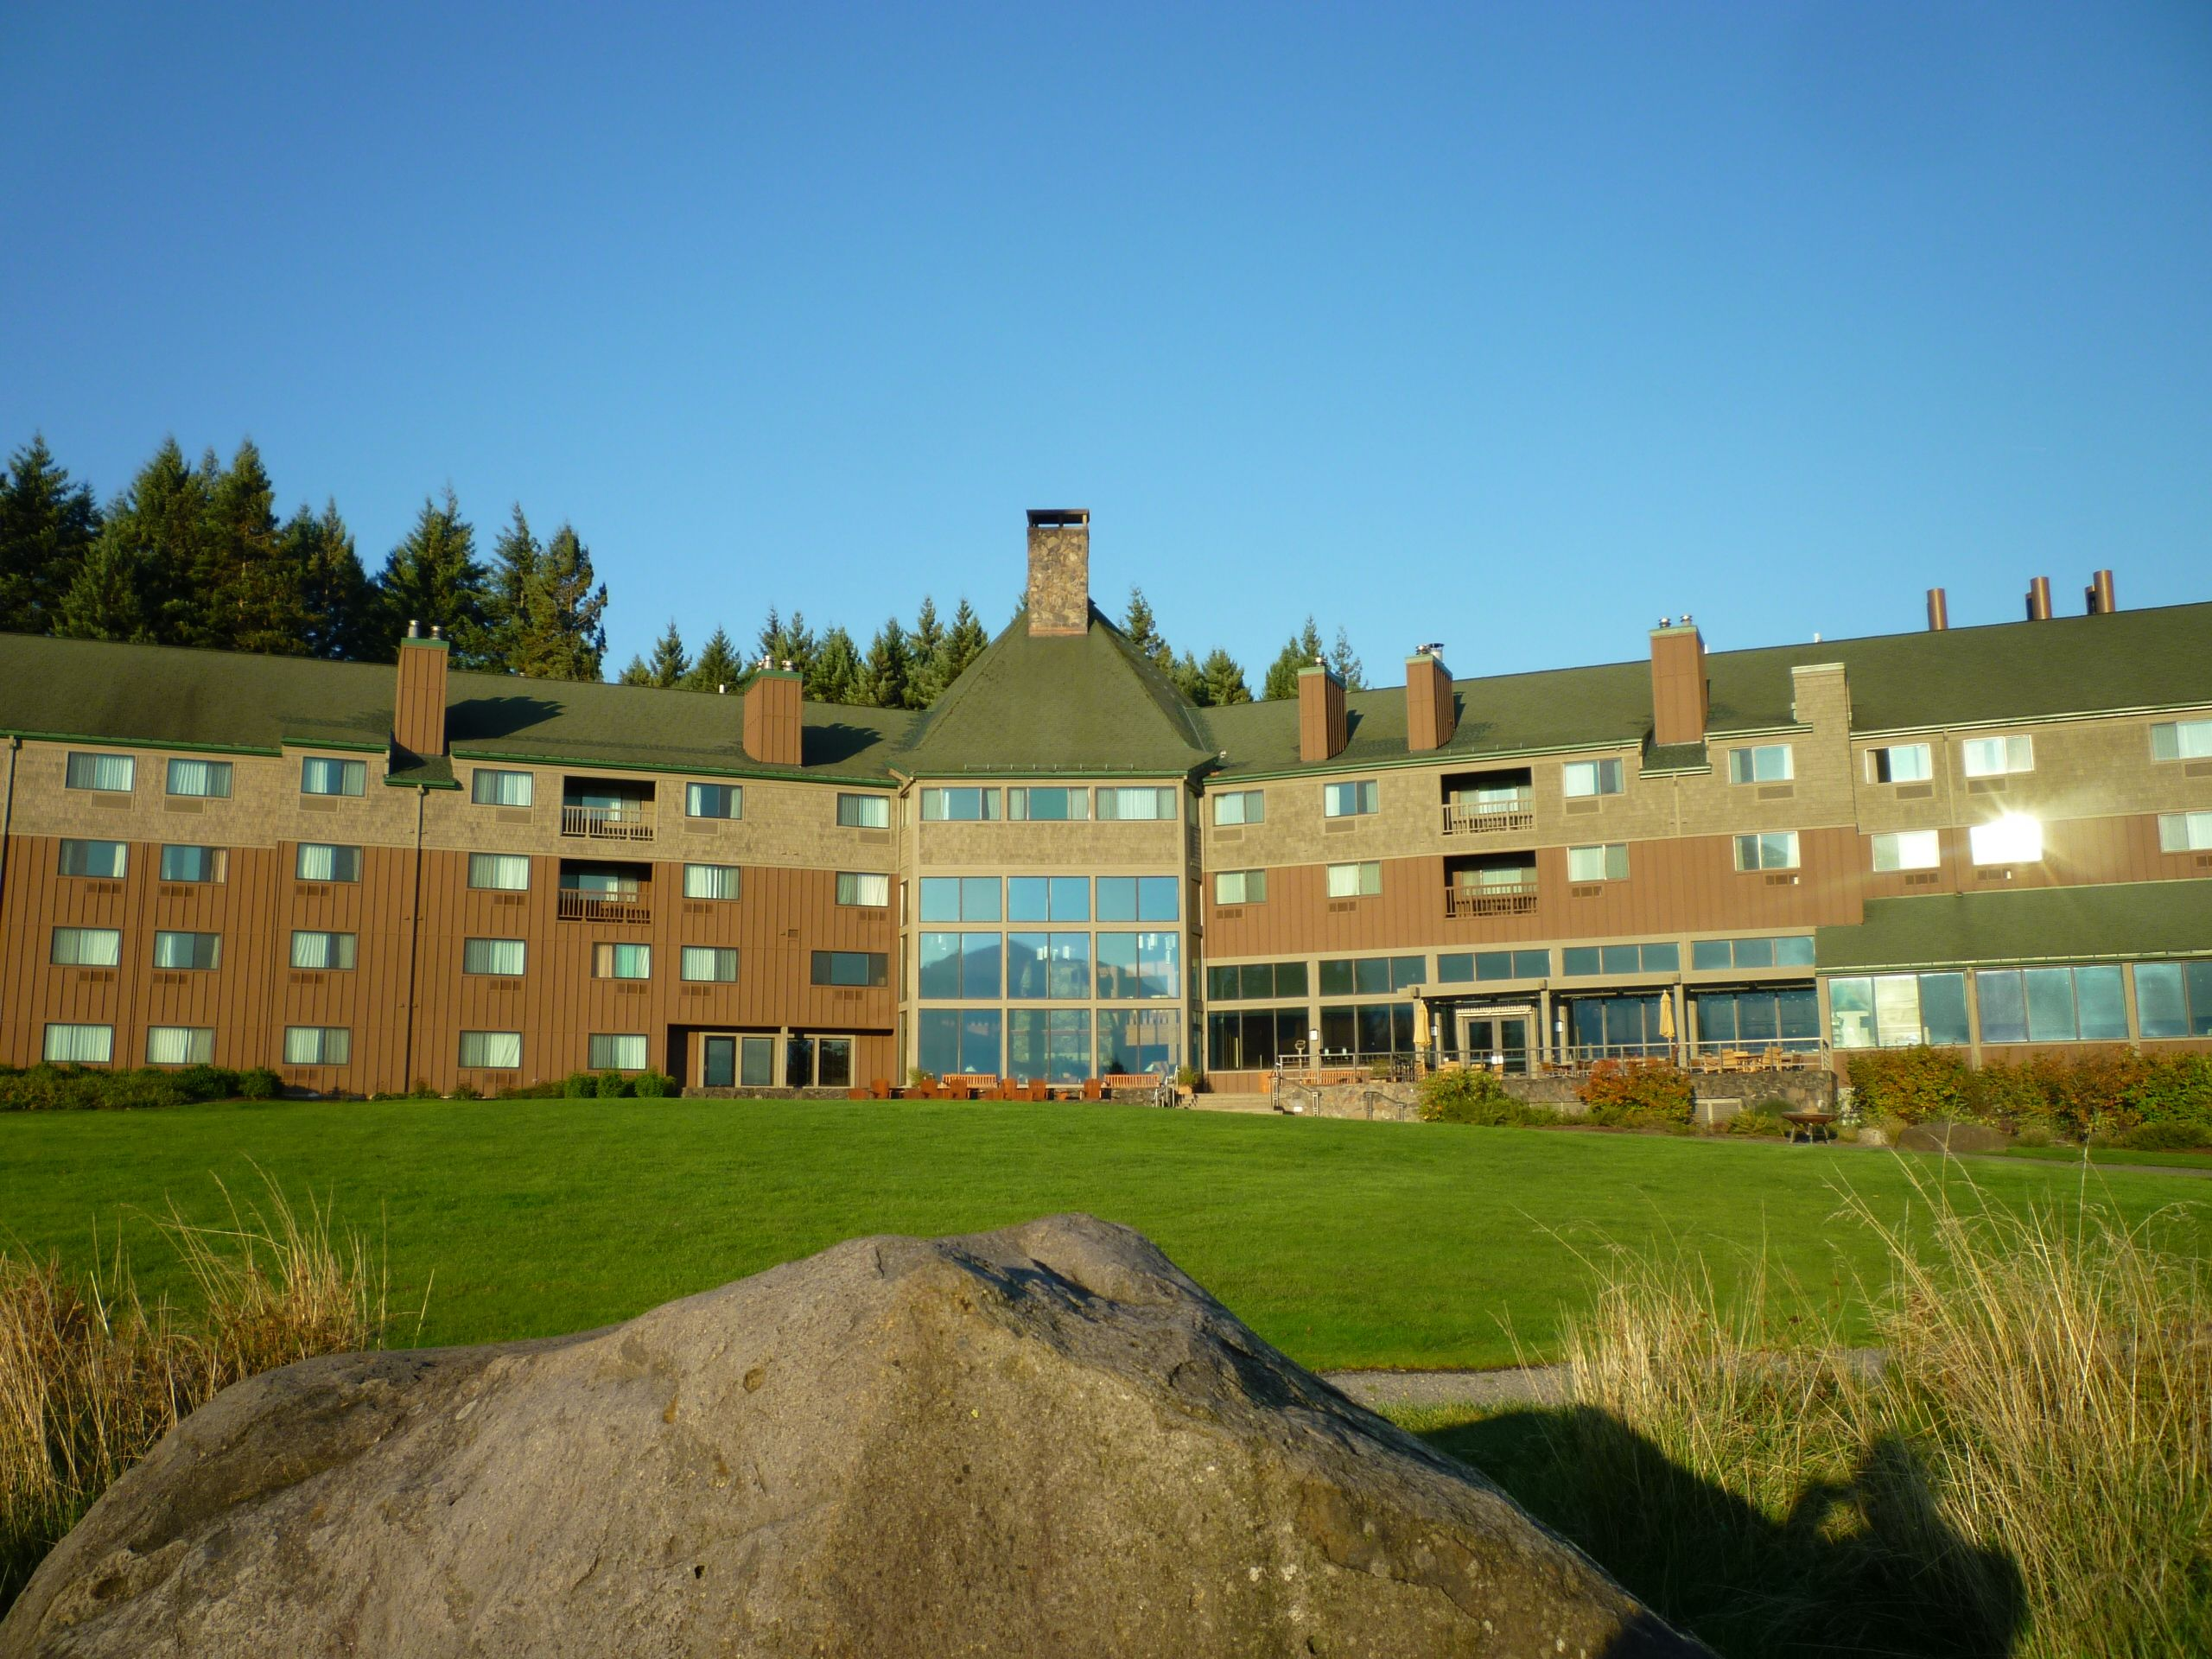 Escape To Snia Lodge And Discover The Beautiful Adventure Comfort That Is A Part Of Every Aspect Its Columbia Gorge Hotel